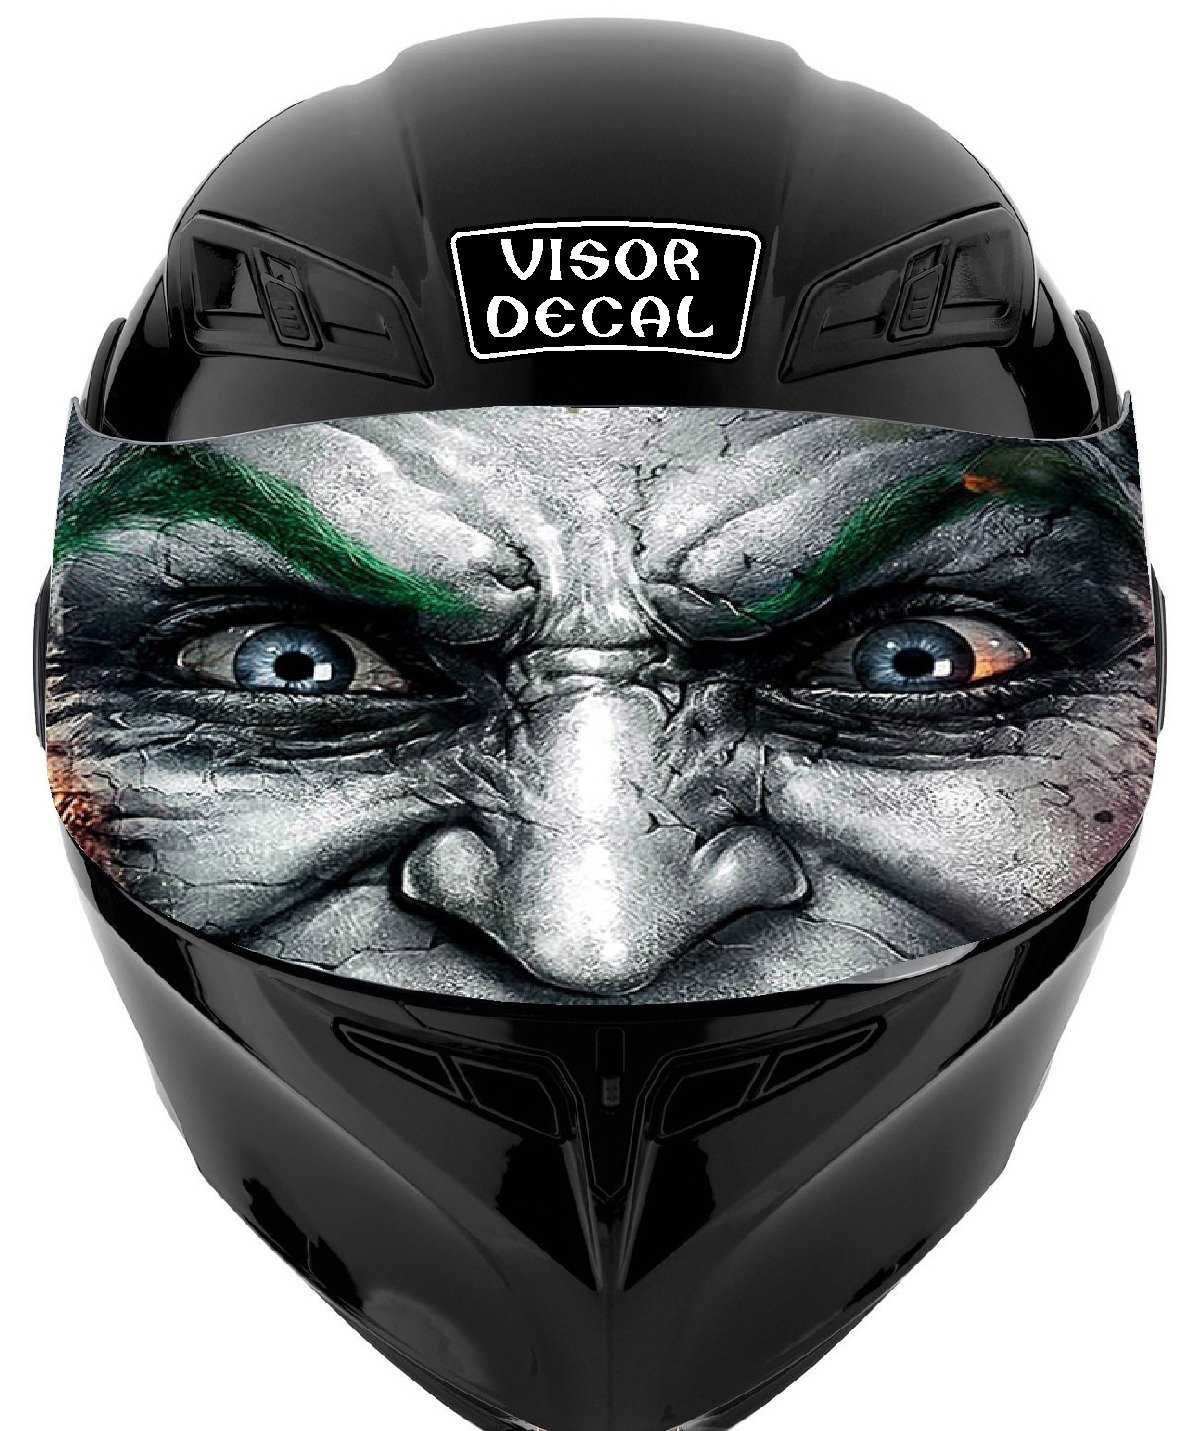 Amazon com v18 joker visor tint decal graphic sticker helmet fits icon shoei bell hjc oneal scorpion agv automotive